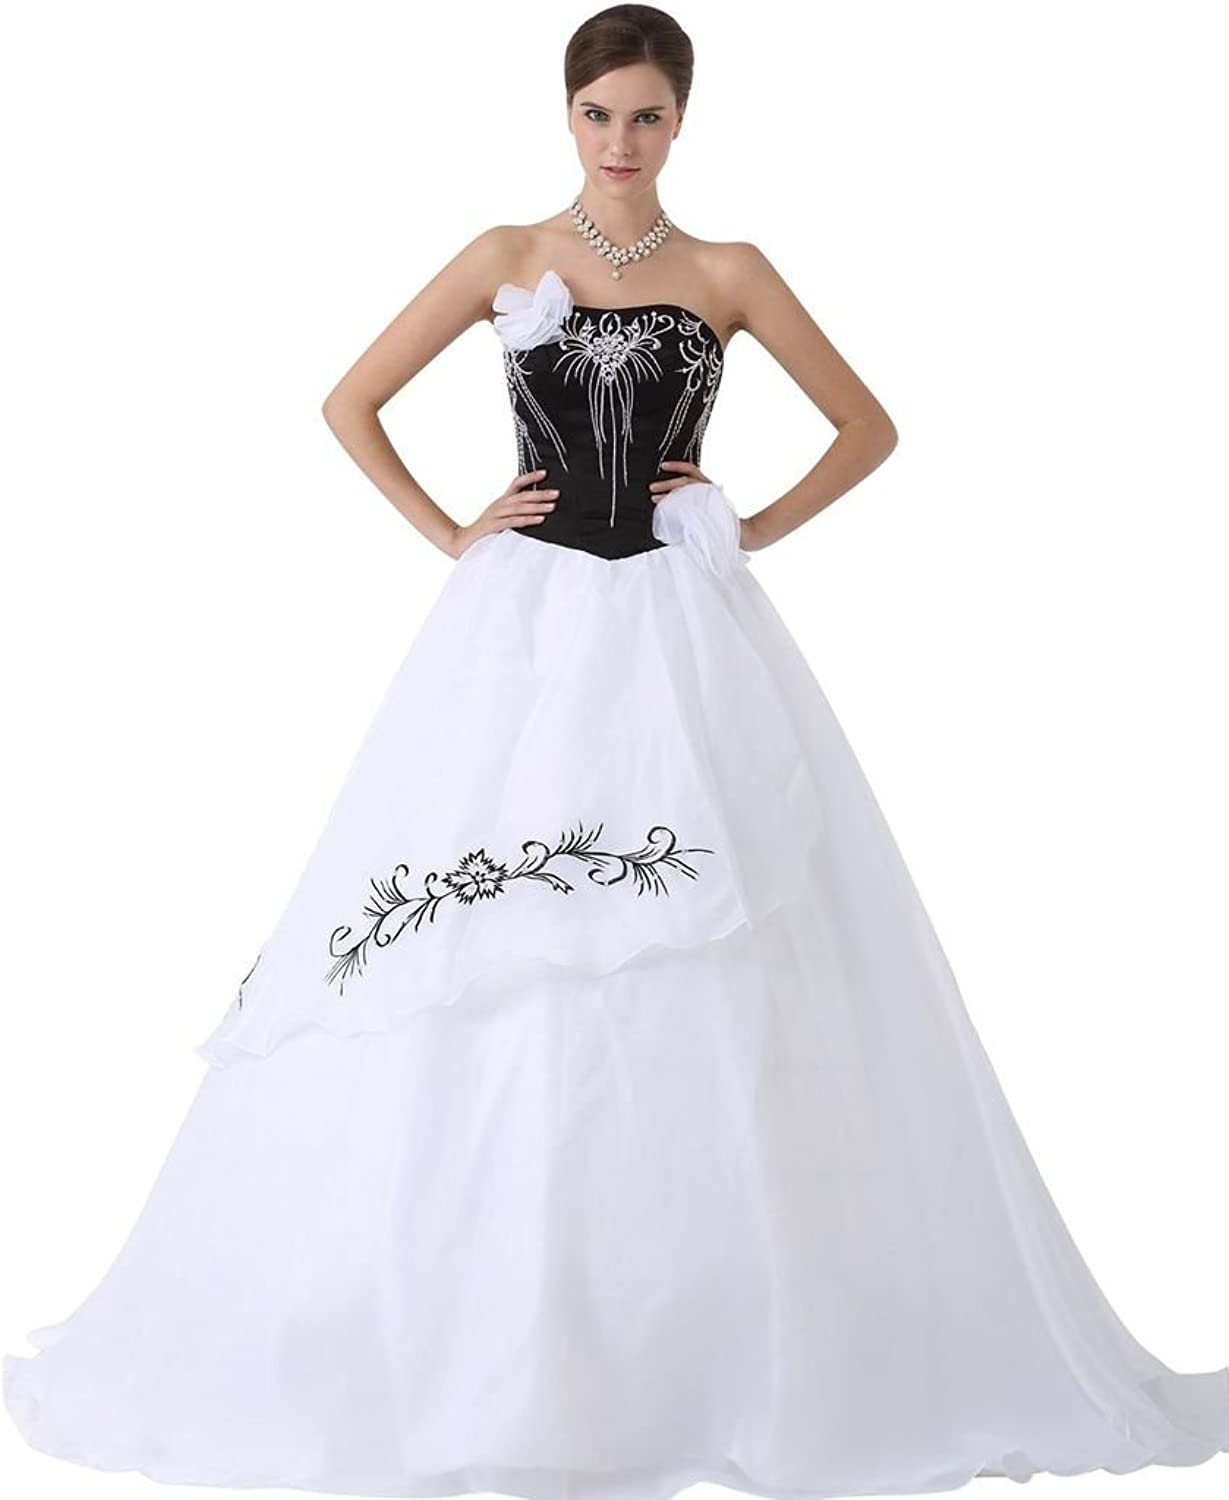 pinkFASHION Women's Embroidery prom Ball Gown dress White US 16